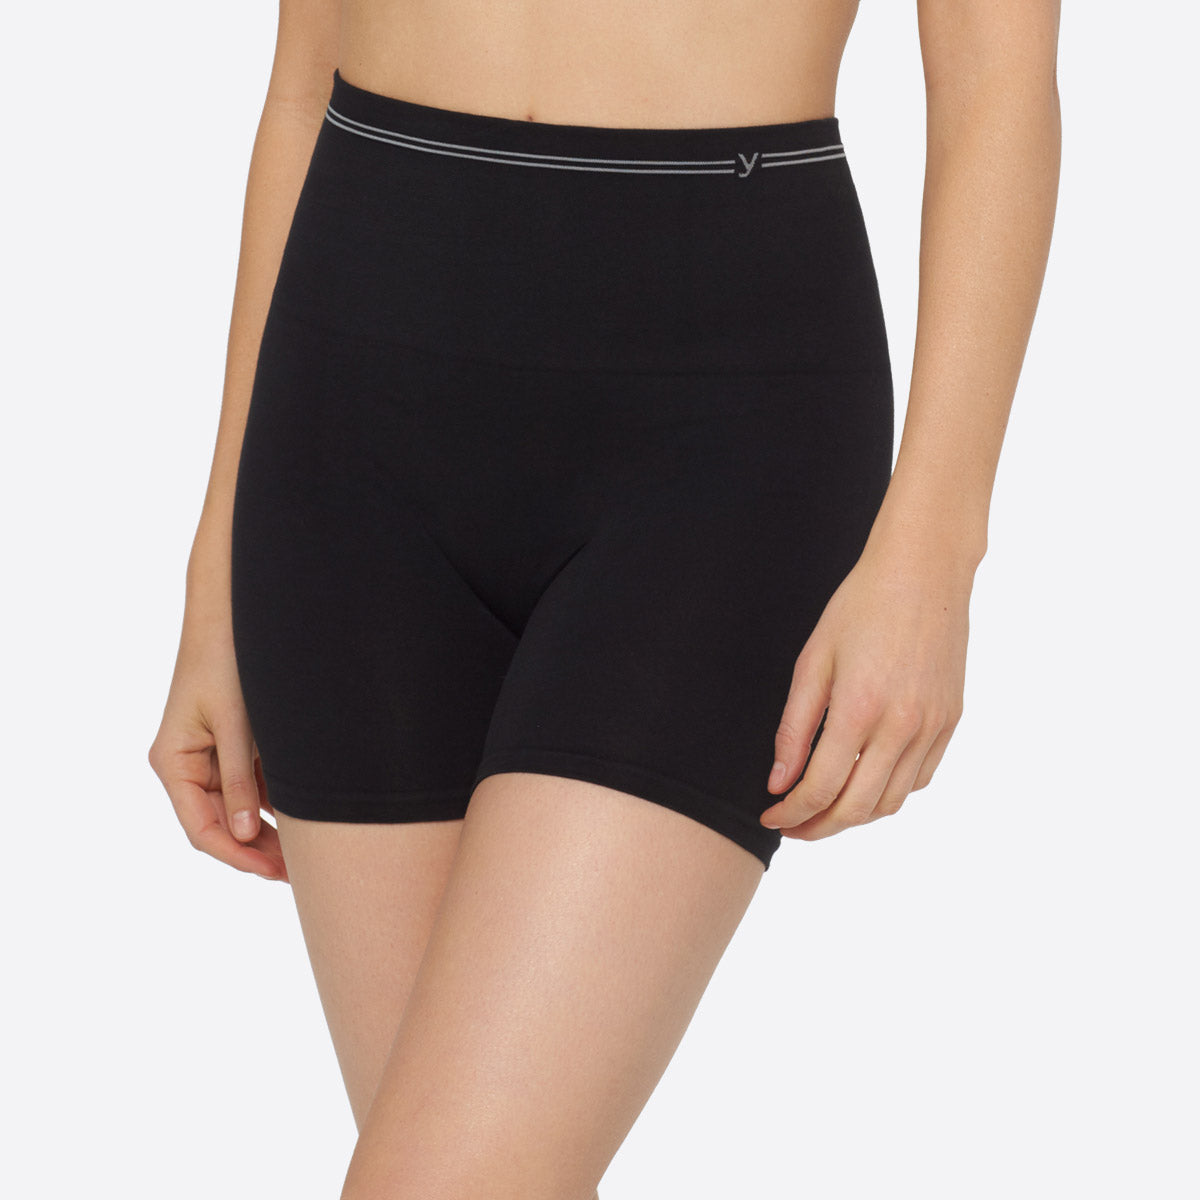 Seamless Cotton Shaping Short in black.